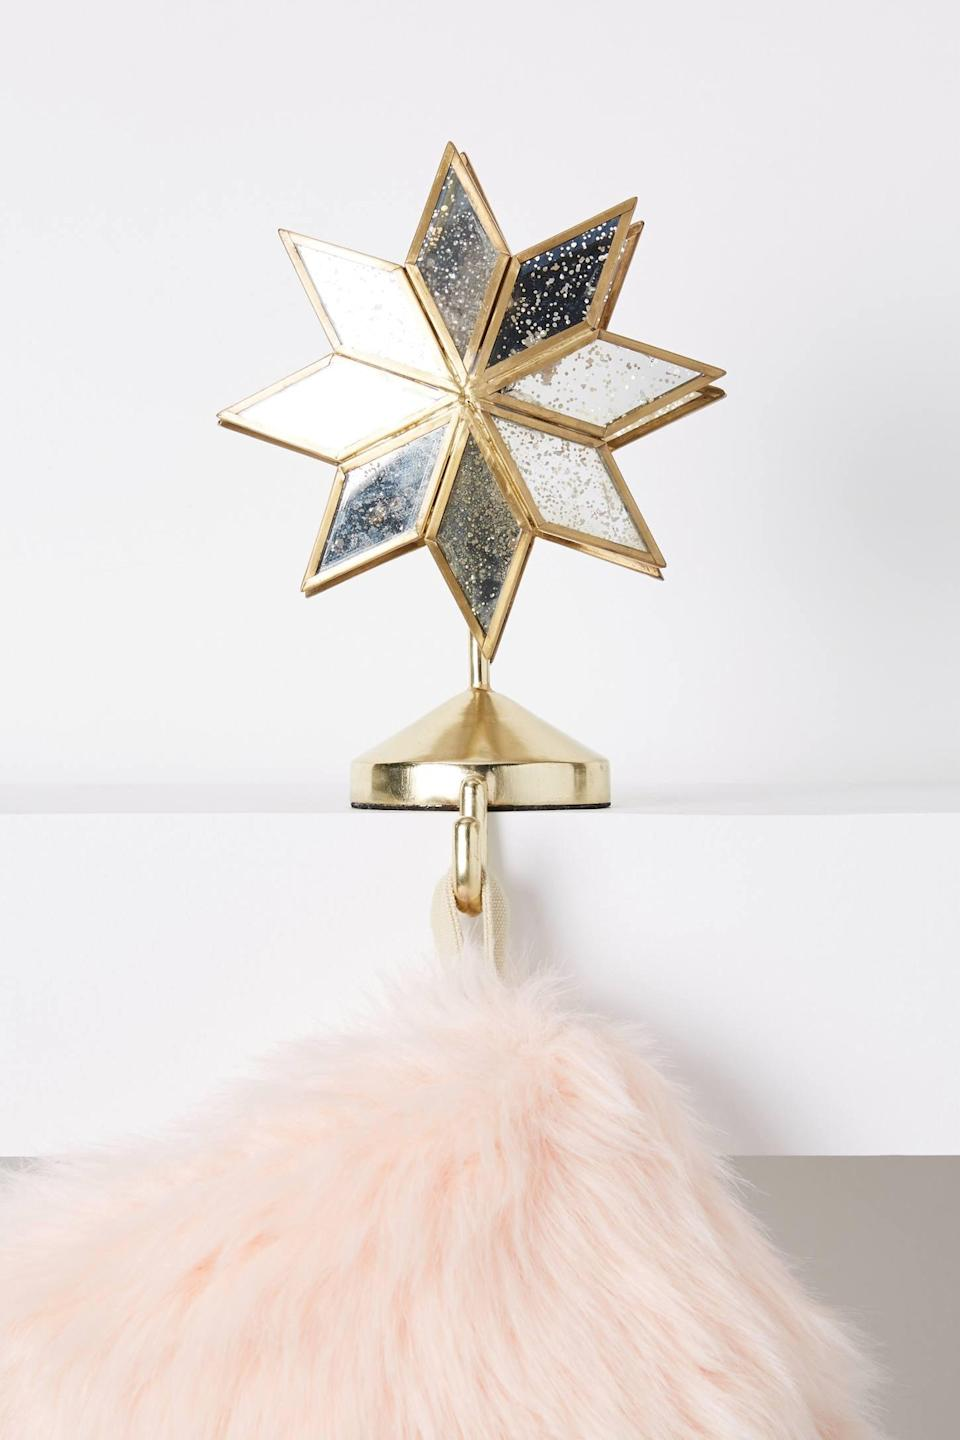 """<p>Let the stars hold your stockings this year with the <a href=""""https://www.popsugar.com/buy/North-Star-Stocking-Holder-490469?p_name=North%20Star%20Stocking%20Holder&retailer=anthropologie.com&pid=490469&price=38&evar1=casa%3Aus&evar9=46615300&evar98=https%3A%2F%2Fwww.popsugar.com%2Fhome%2Fphoto-gallery%2F46615300%2Fimage%2F46615339%2FNorth-Star-Stocking-Holder&list1=shopping%2Canthropologie%2Choliday%2Cchristmas%2Cchristmas%20decorations%2Choliday%20decor%2Chome%20shopping&prop13=mobile&pdata=1"""" rel=""""nofollow noopener"""" class=""""link rapid-noclick-resp"""" target=""""_blank"""" data-ylk=""""slk:North Star Stocking Holder"""">North Star Stocking Holder</a> ($38).</p>"""